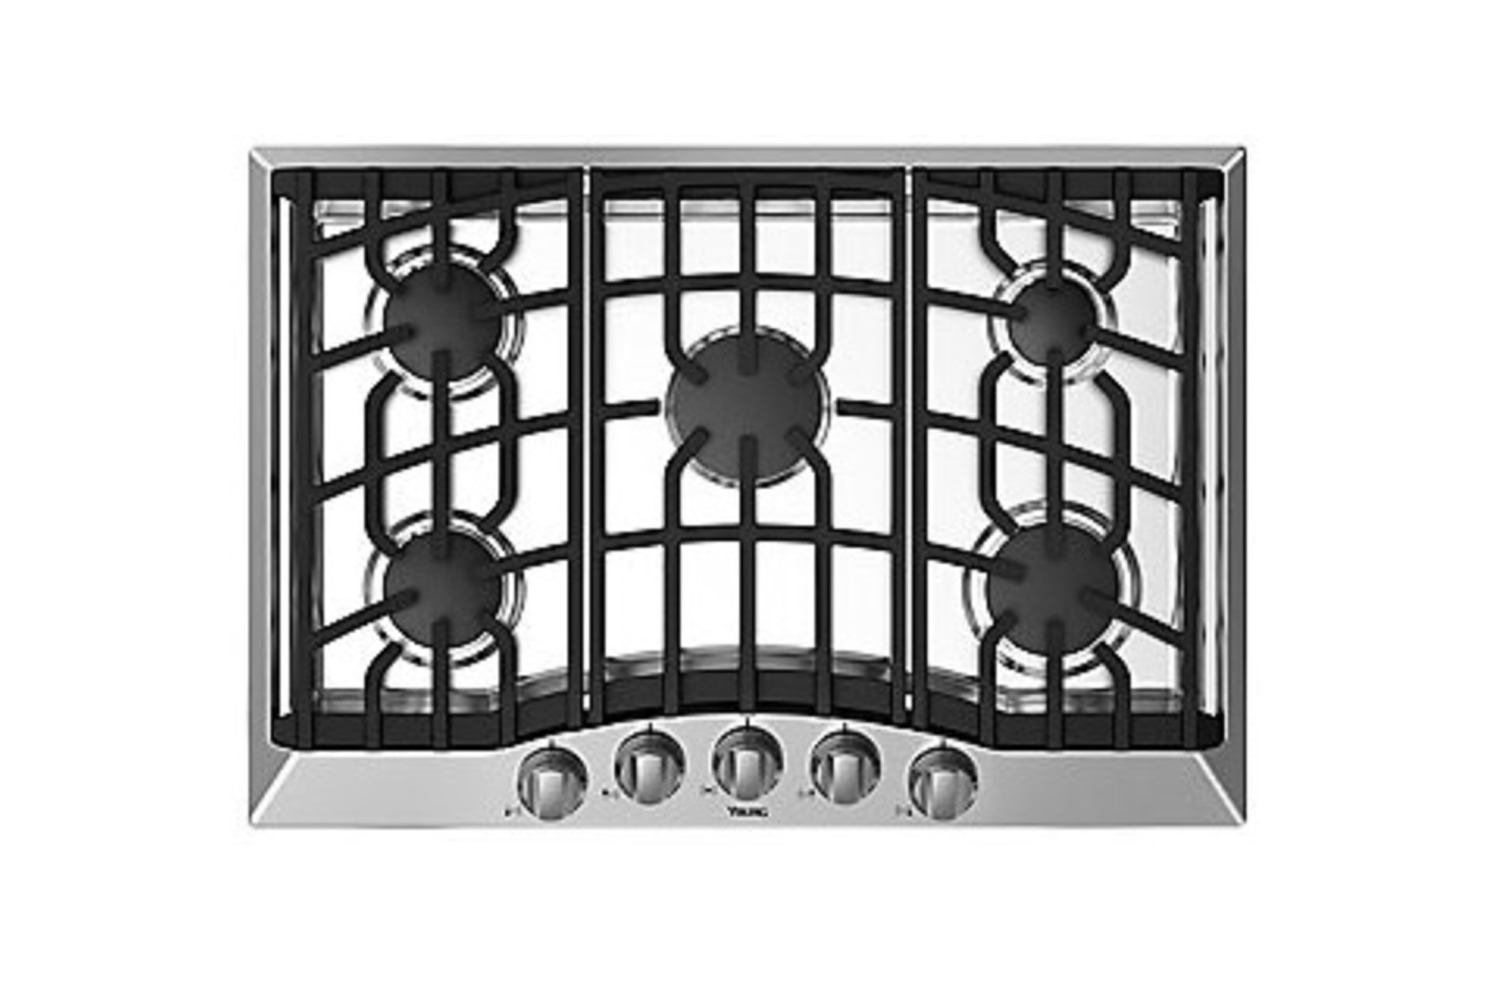 the viking 36 inch gas cooktop (rvgc336\15) is \$\1,909 at abt. 15